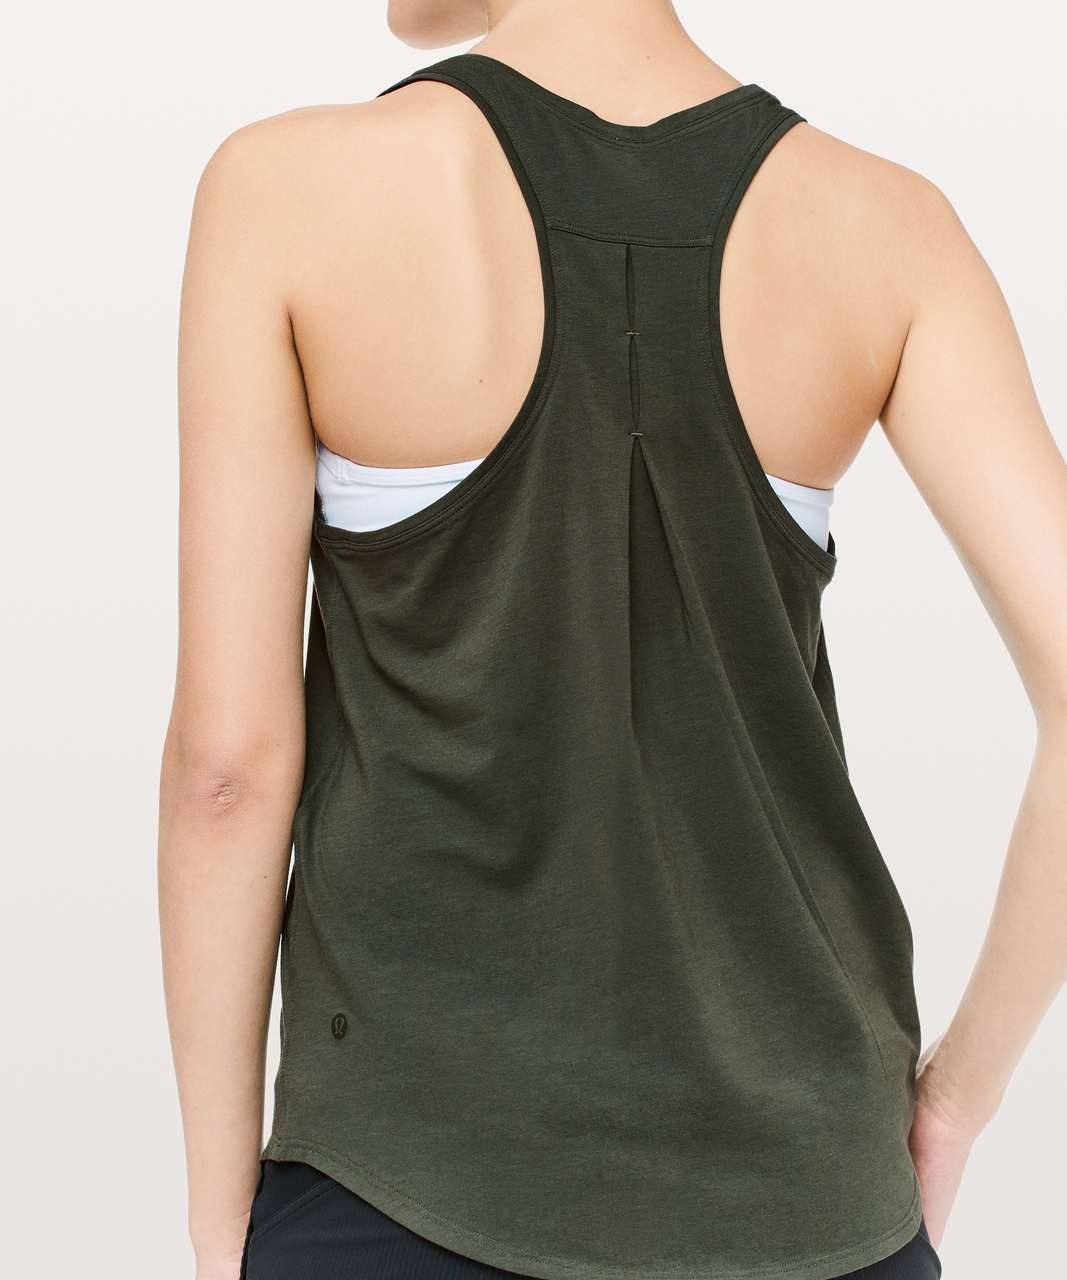 Lululemon Love Tank *Pleated - Dark Olive